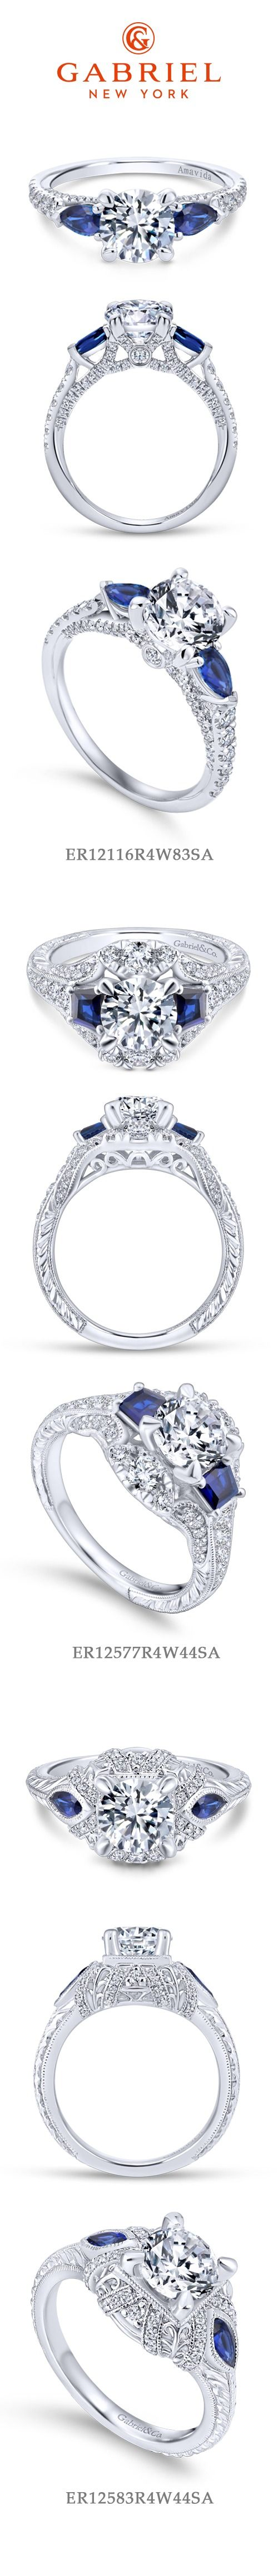 co jewelry ny and fine top gabriel pin brand your engagement bridal find oval rings preferred